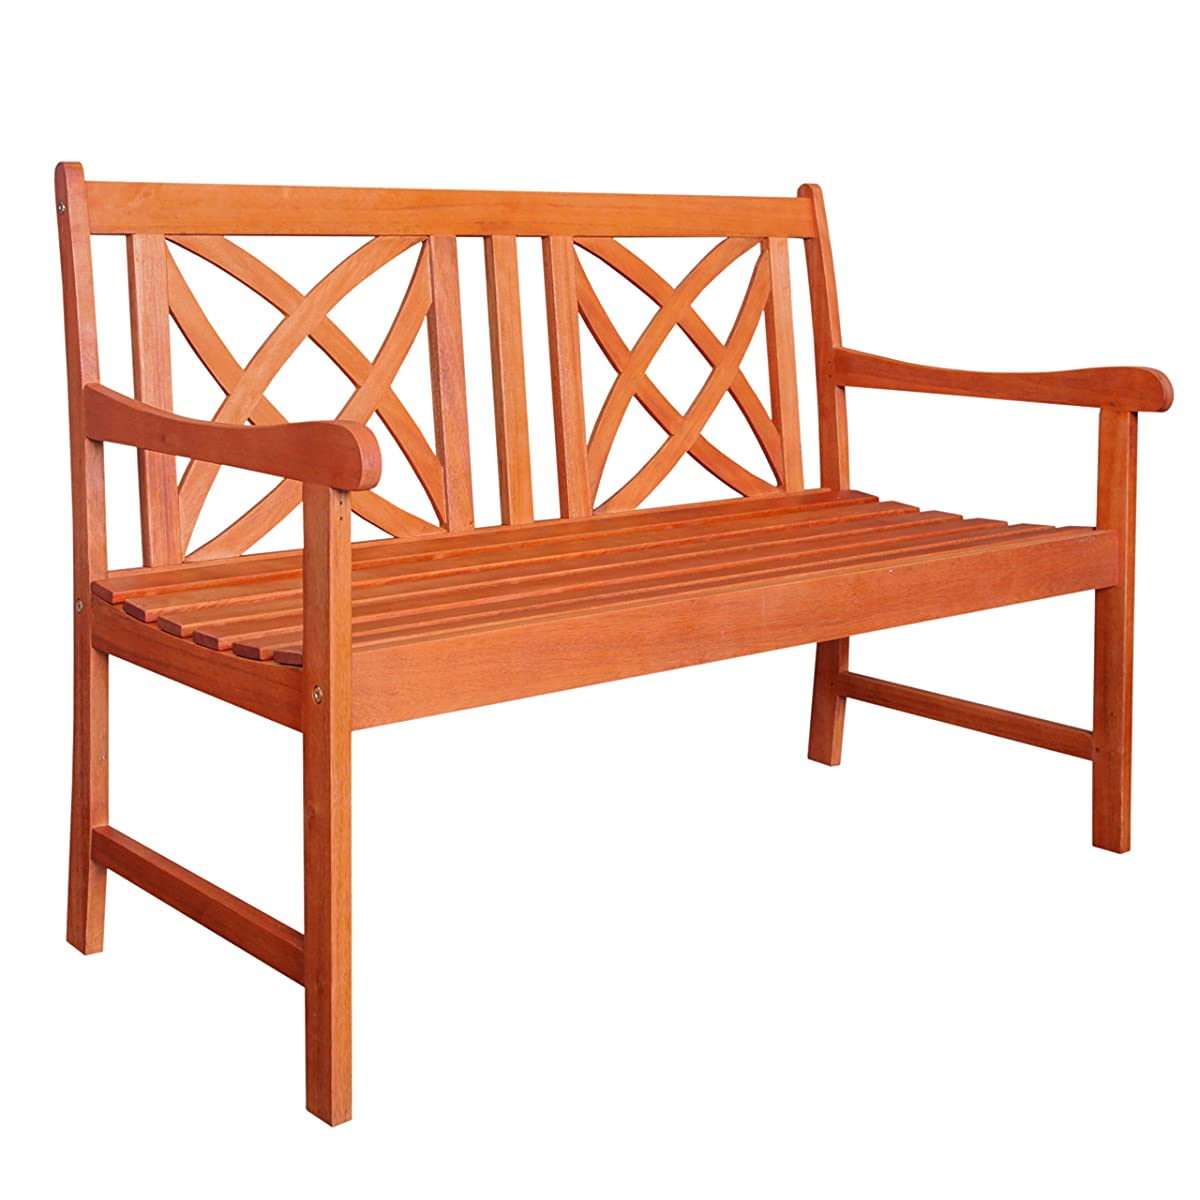 Vifah V1493 Outdoor Wood Garden Bench, 48.00 x 24.00 x 34.00/4, Brown